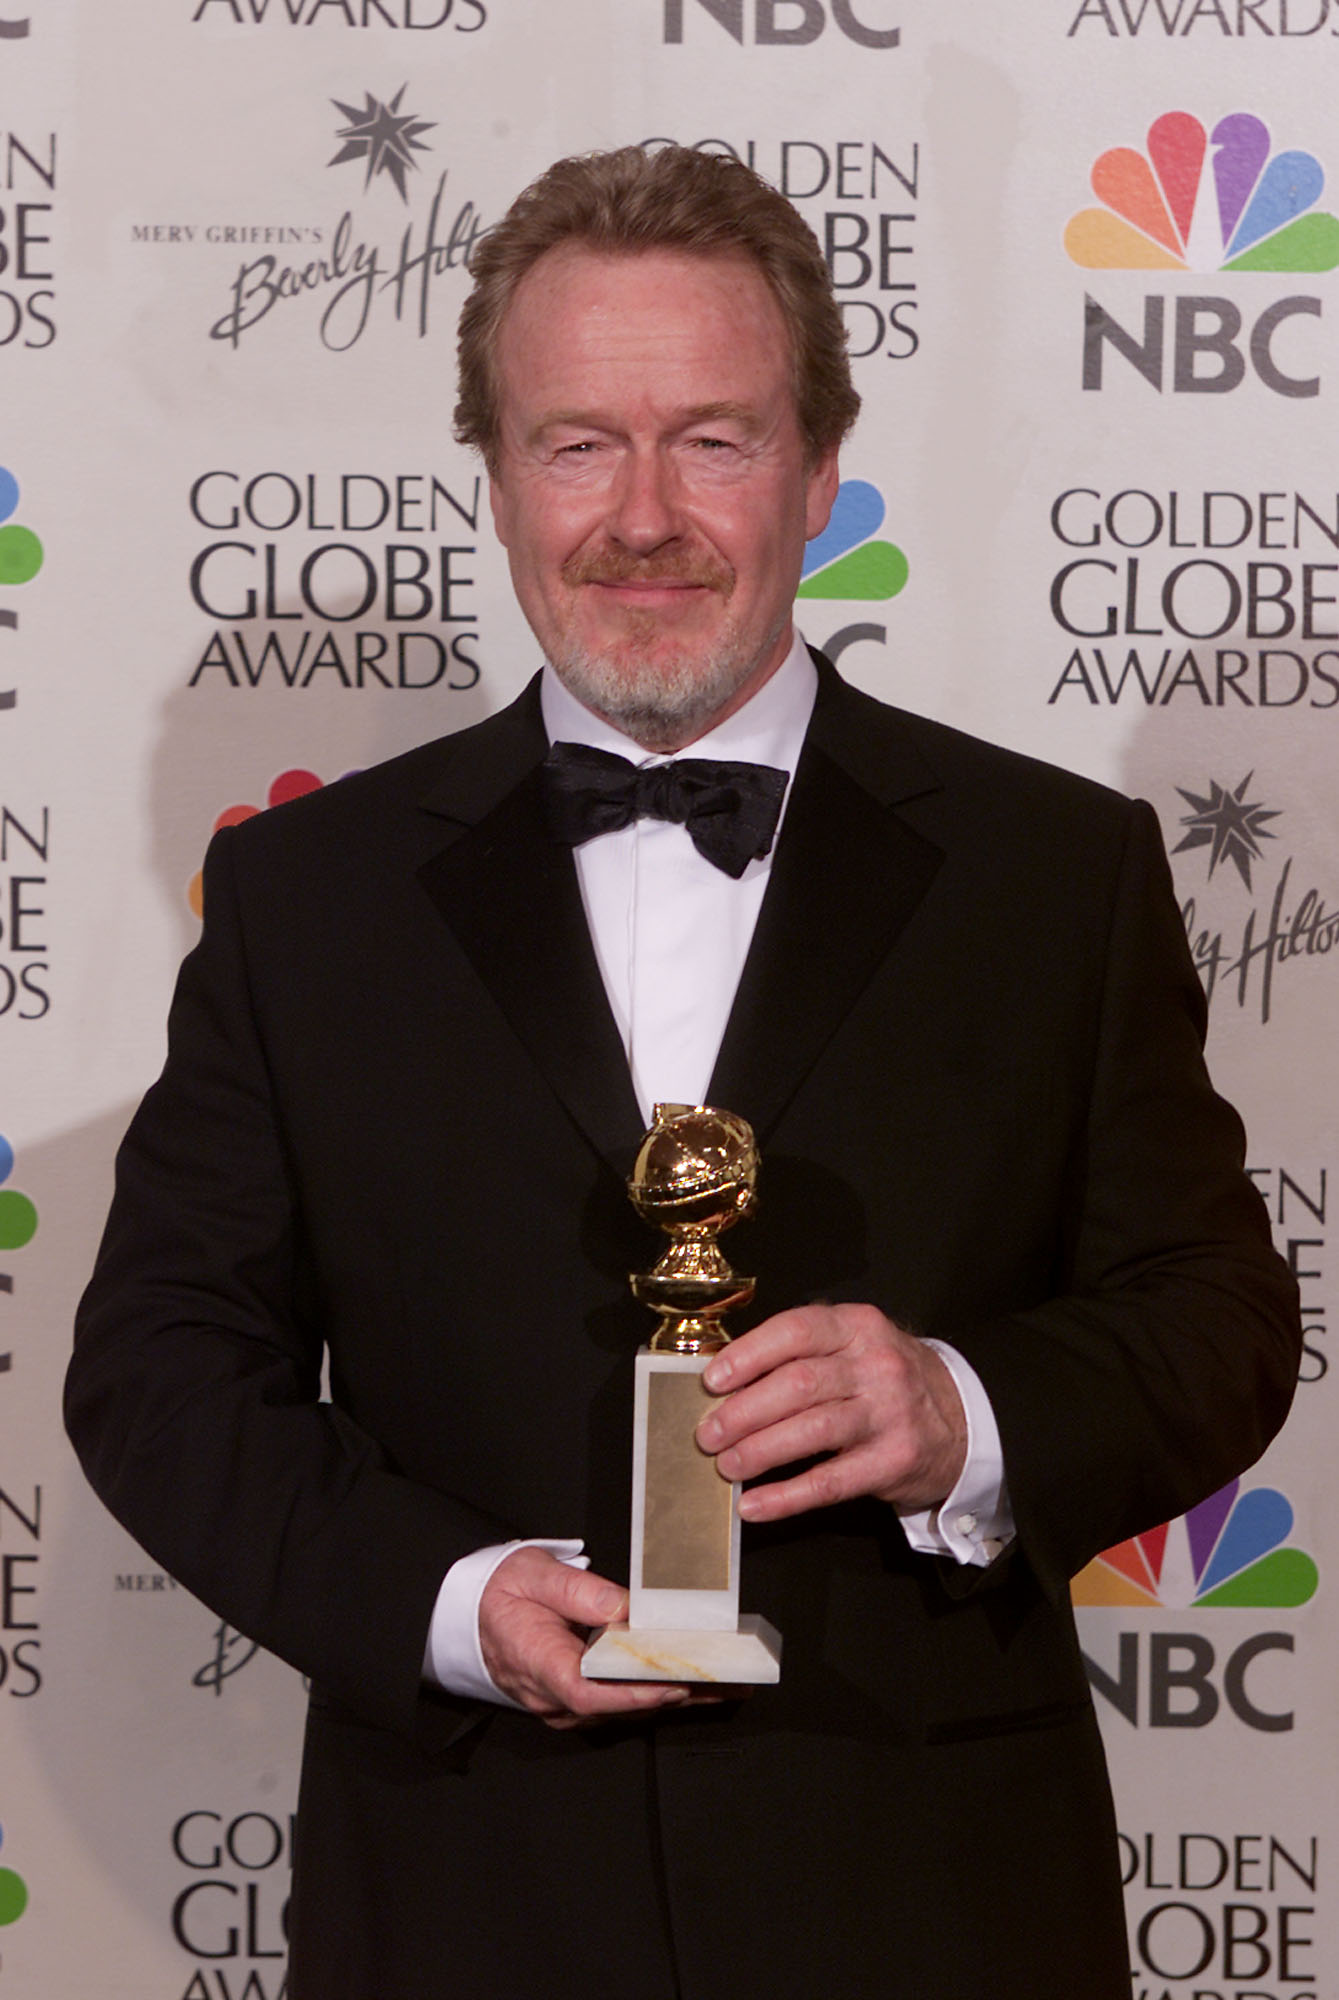 Director Ridley Scott with the award for Best Motion Picture- Drama for 'Gladiator' at the 58th Annual Golden Globe Awards at the Beverly Hilton in Los Angeles, California, on January 21, 2001. (Getty Images)